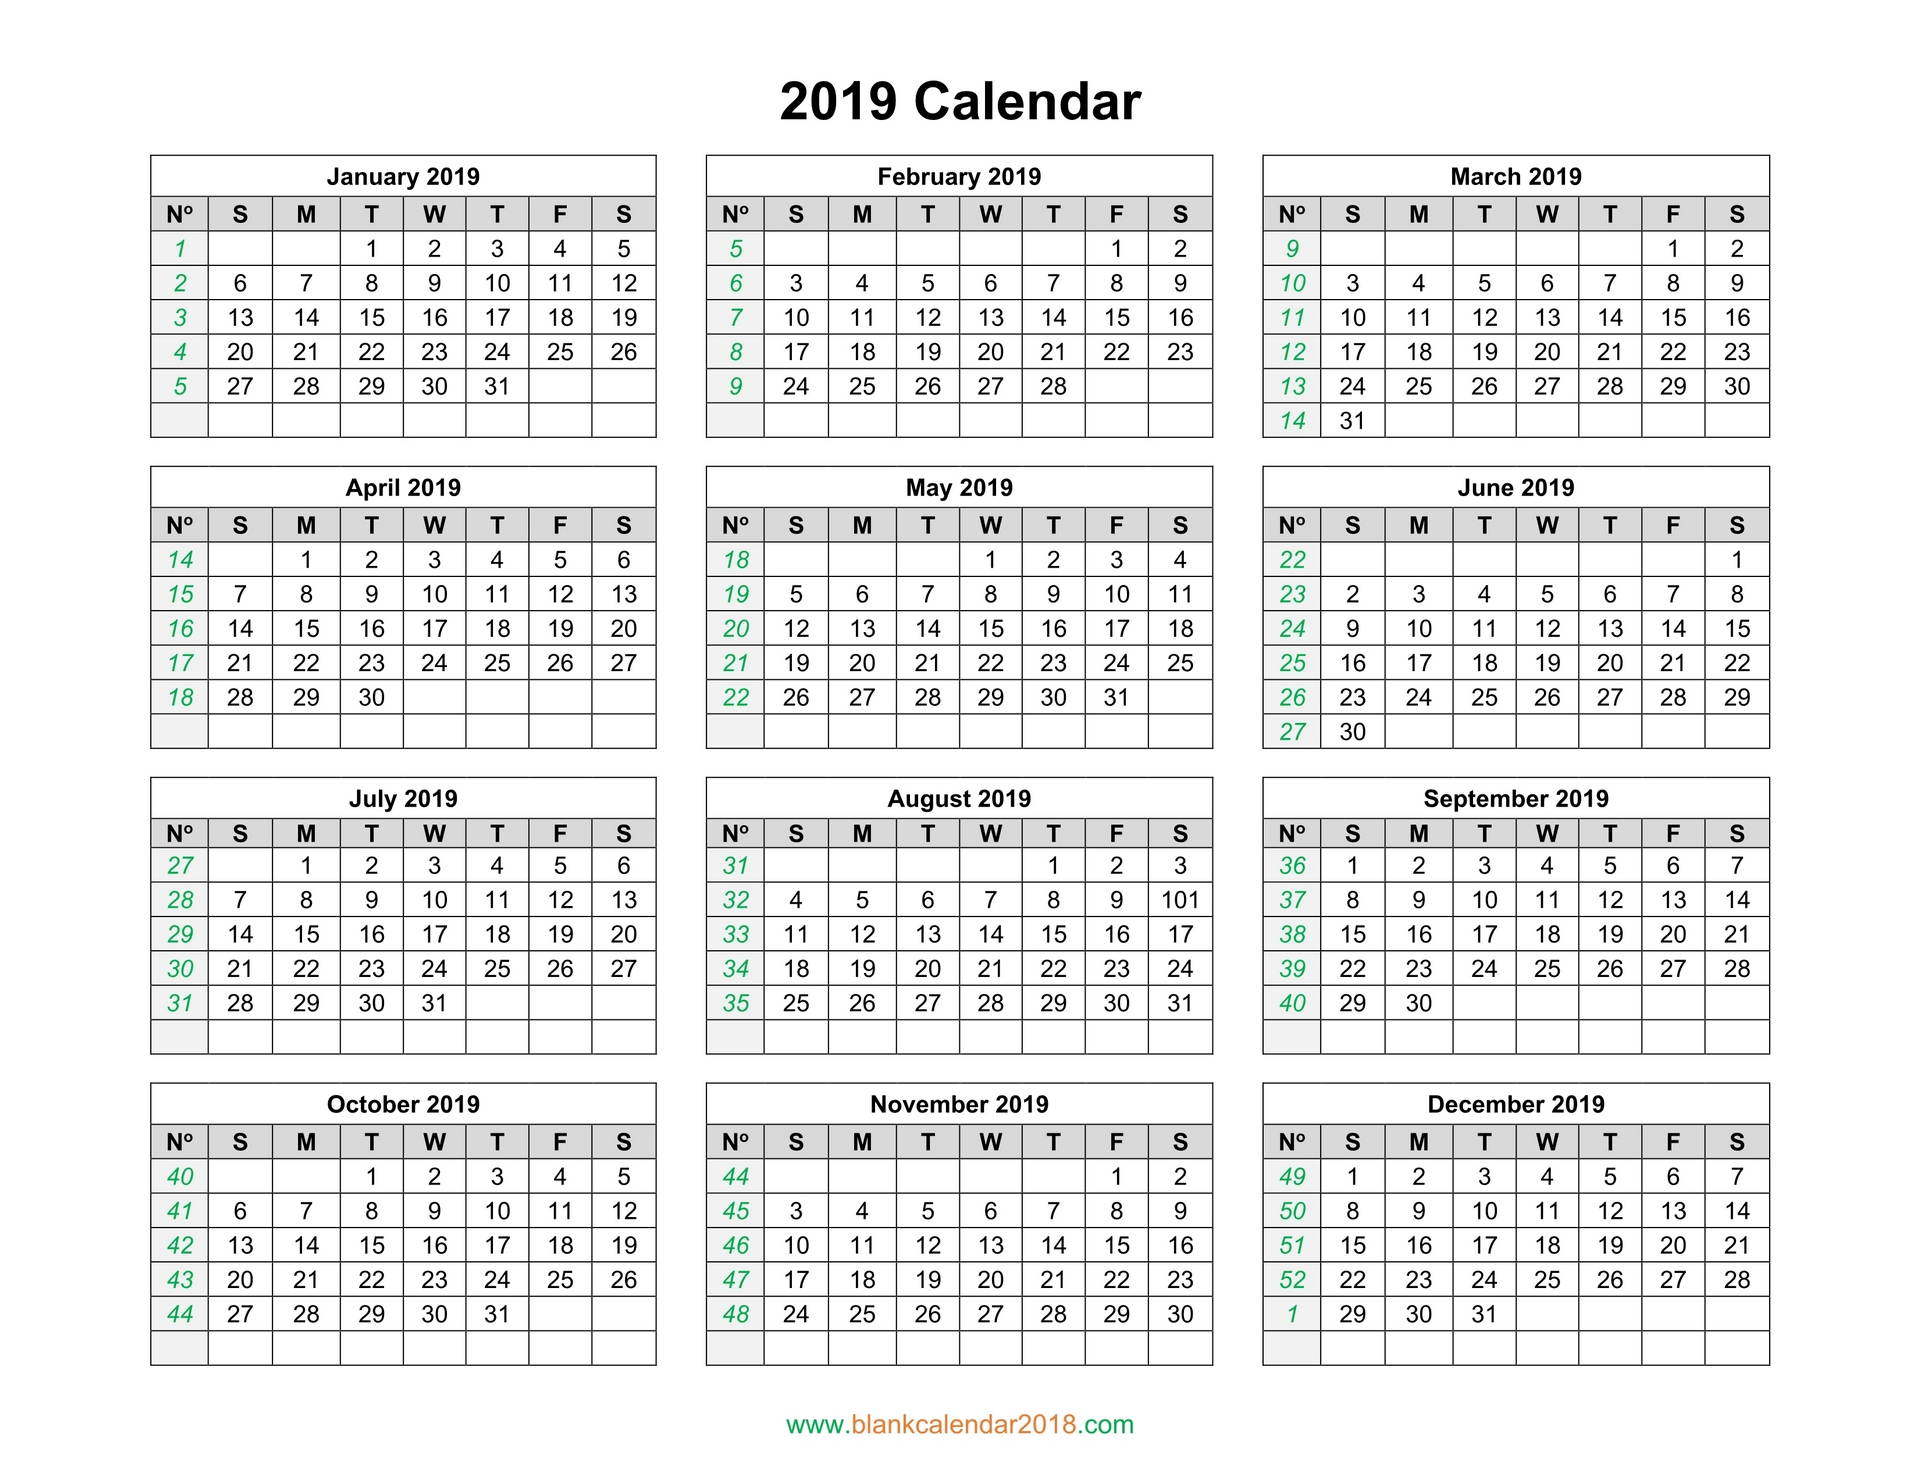 calendar 2019 free download pdf